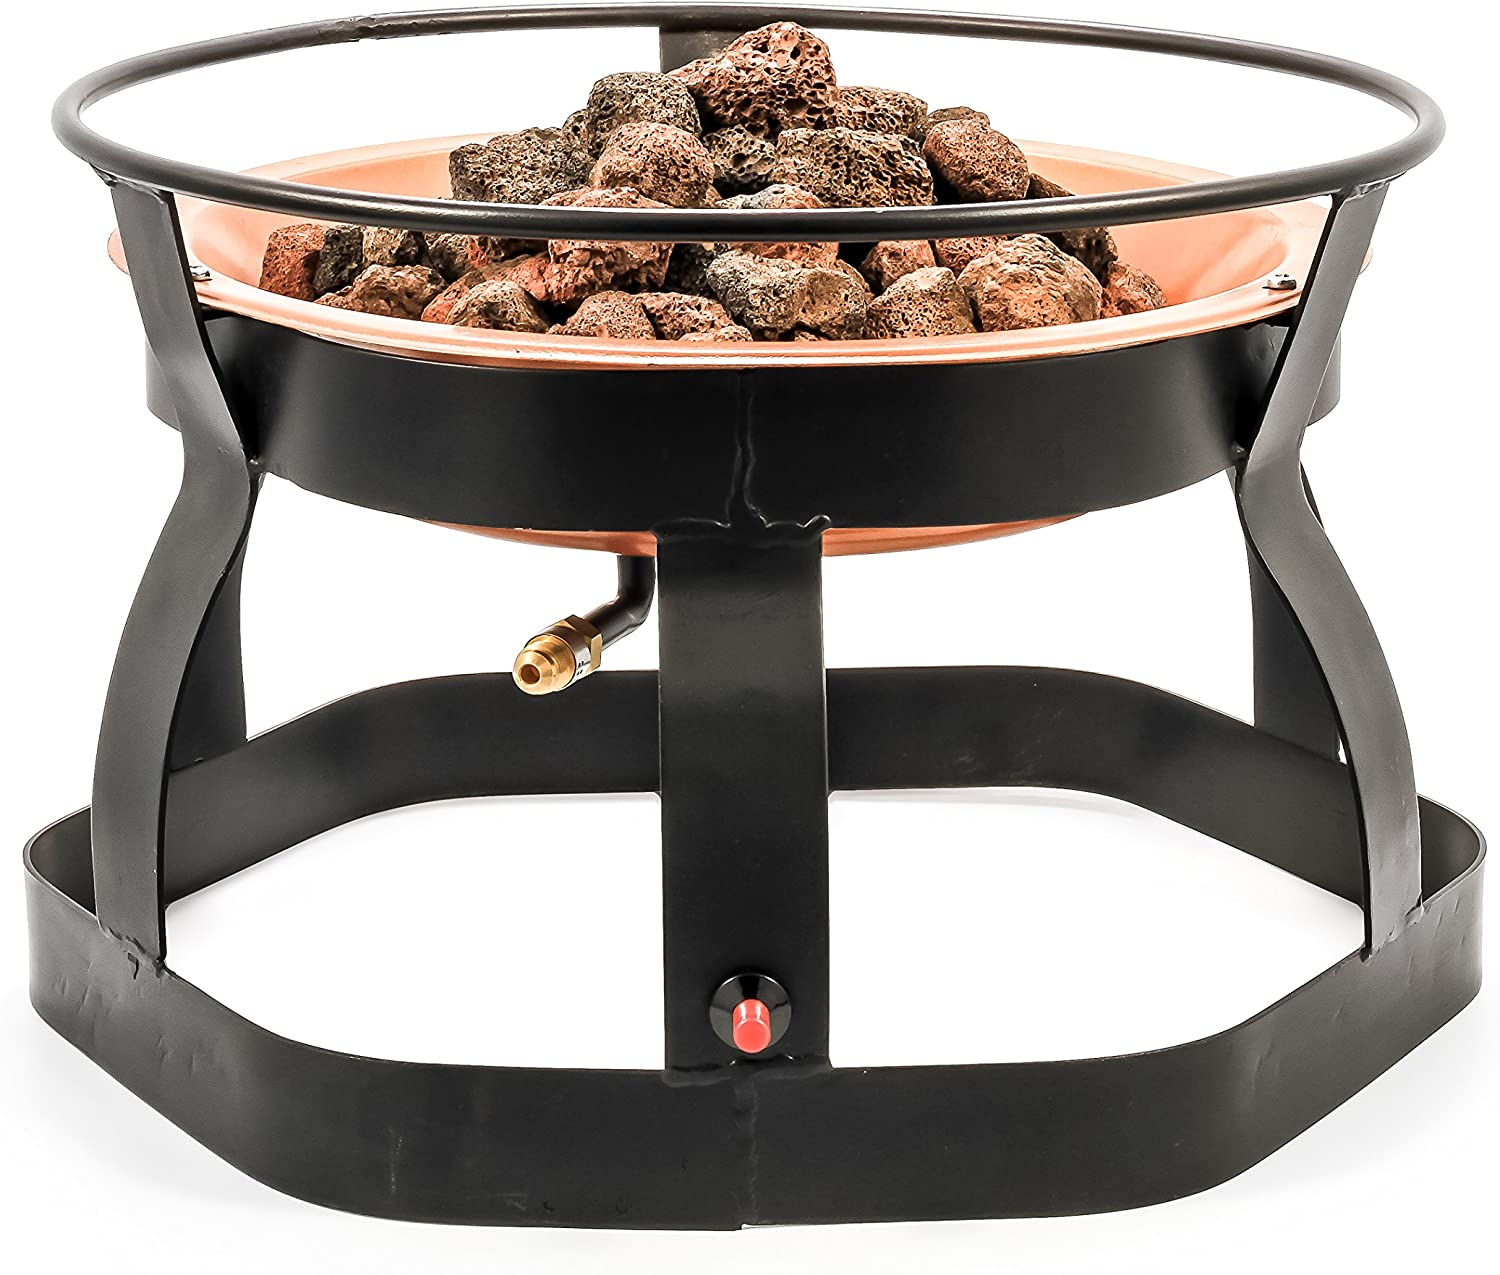 Camco 51210 18 Inch Portable Deluxe Outdoor Fire Pit 65 000 Btu S Includes 10 Foot Propane Hose Automotive Amazon Com